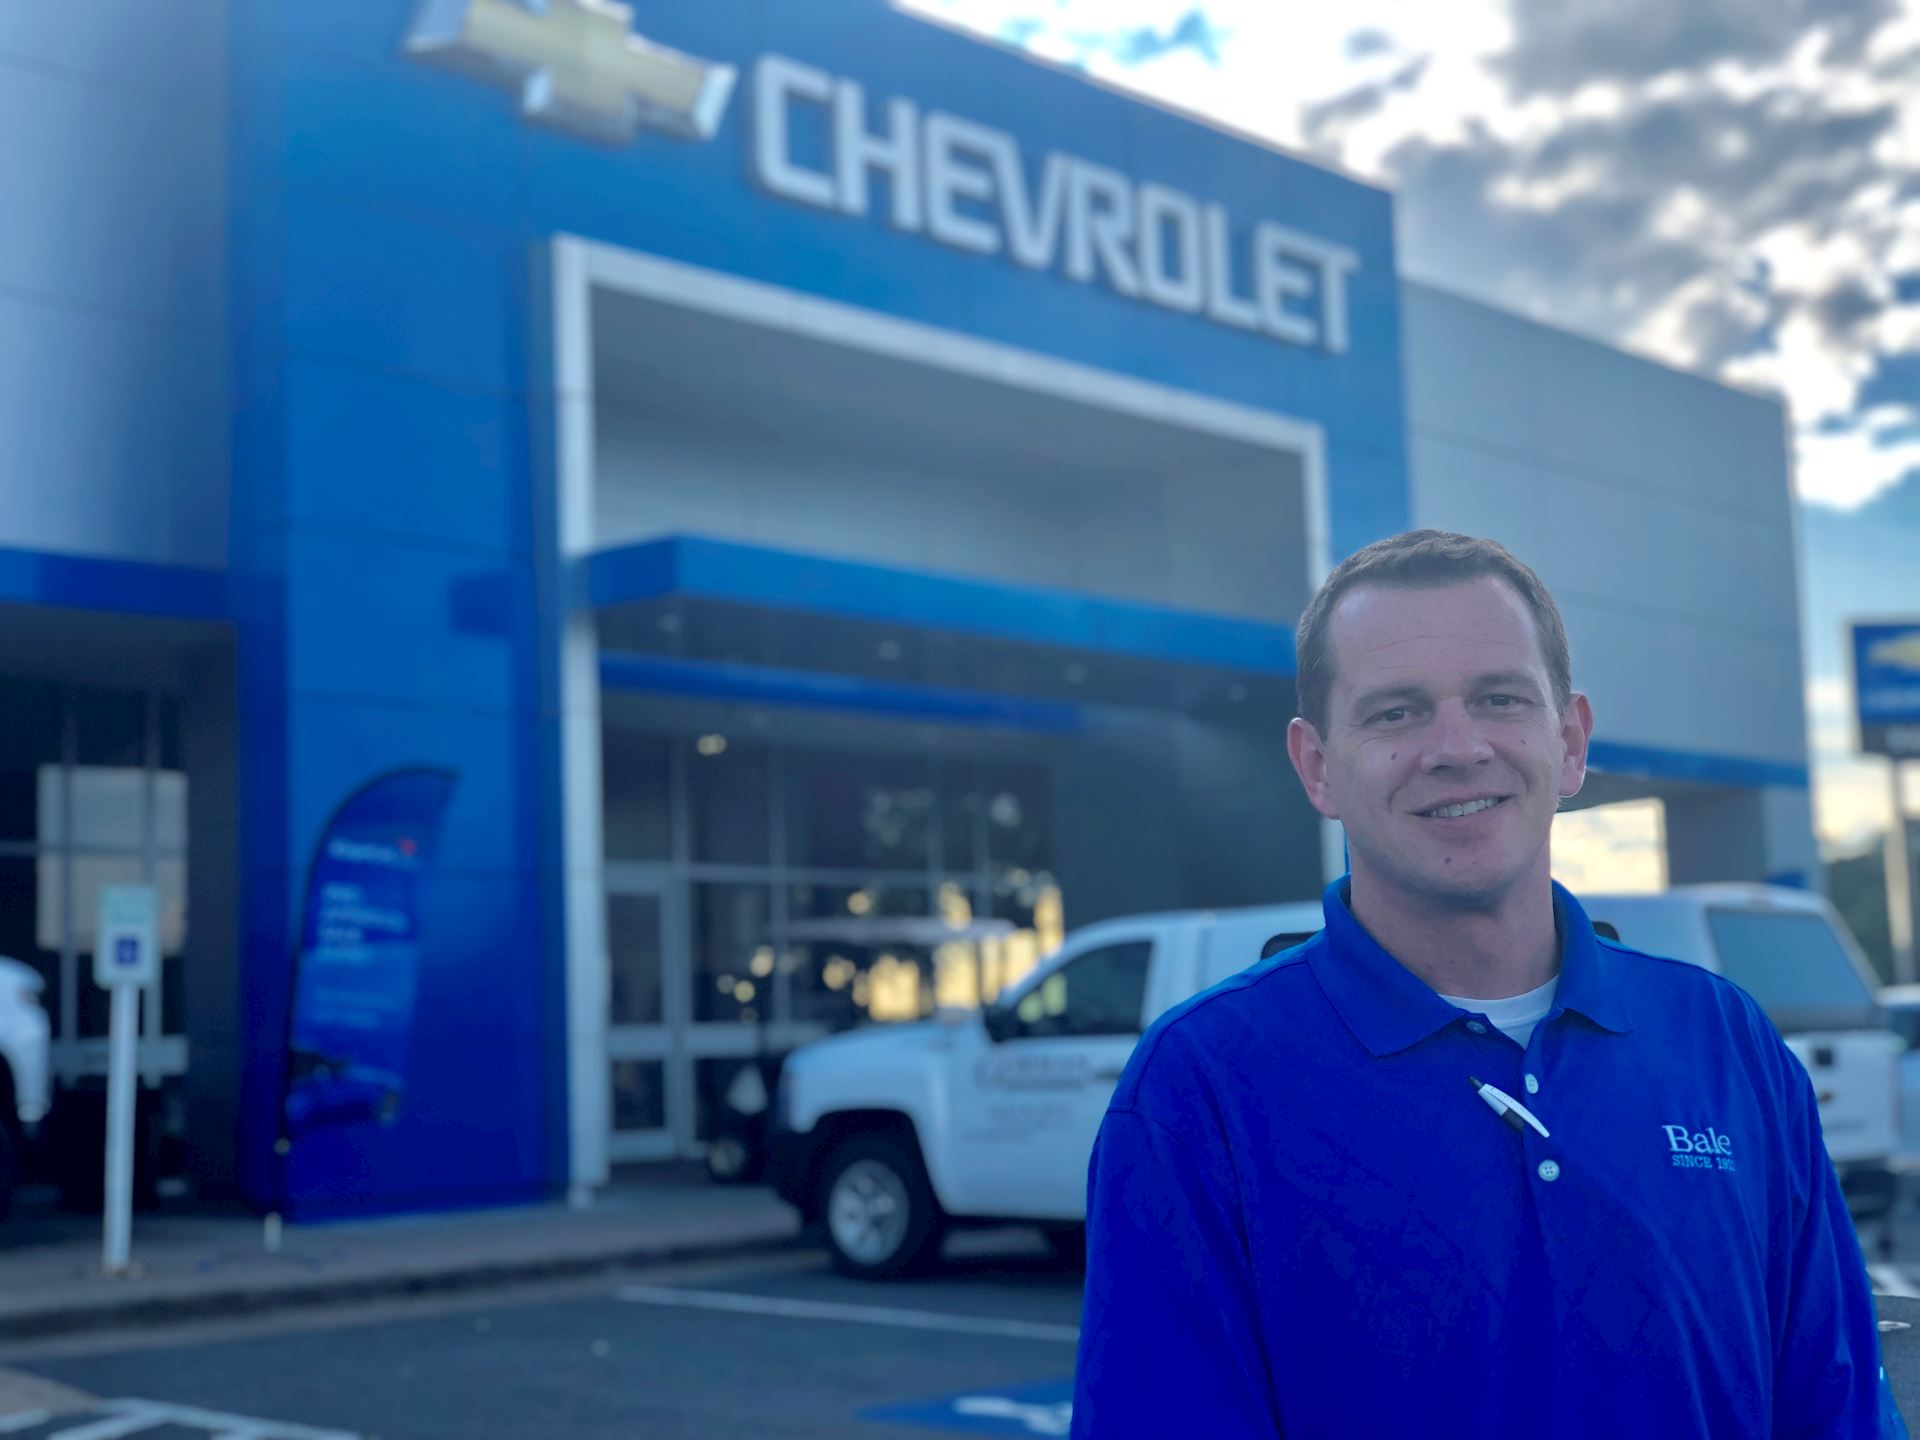 Jared Horton Bale Chevrolet Little Rock Ar